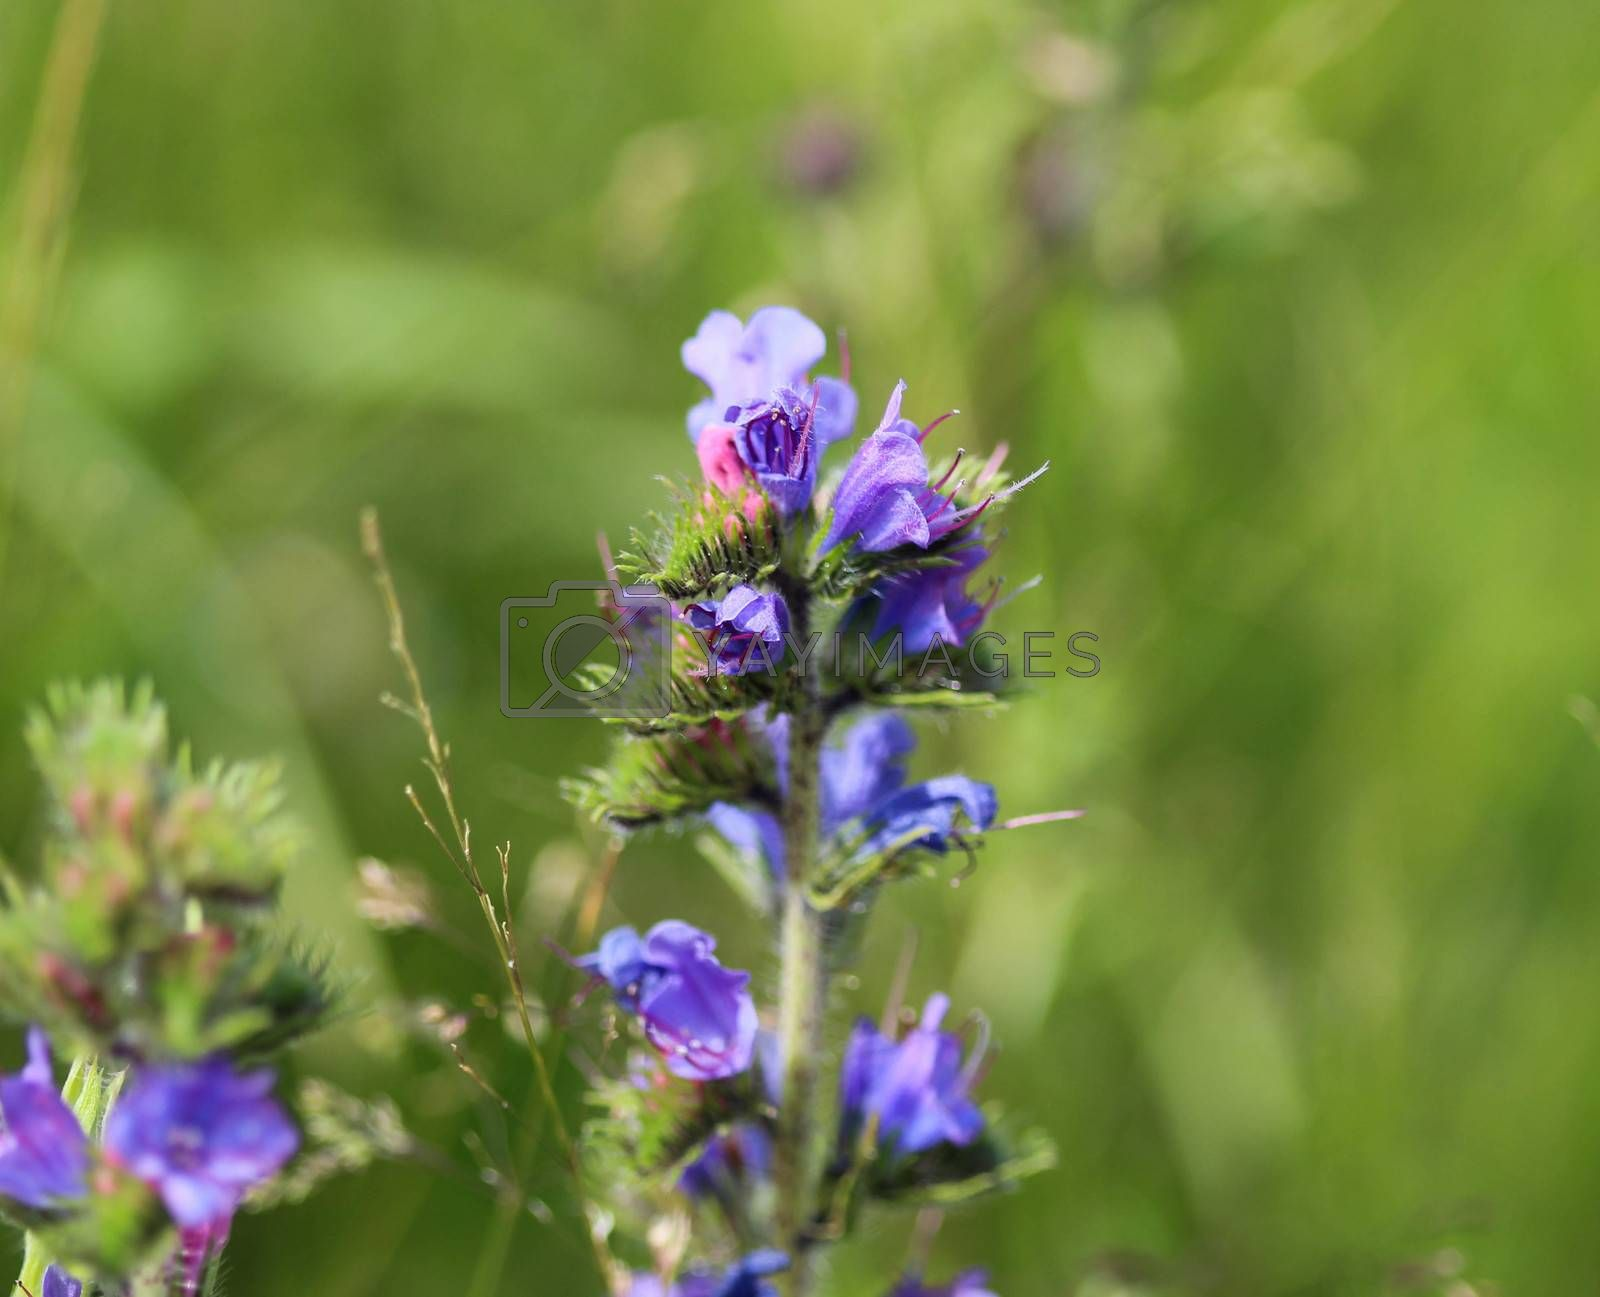 Royalty free image of Echium vulgare flower, known as vipers bugloss and blueweed, blooming in spring by michaelmeijer